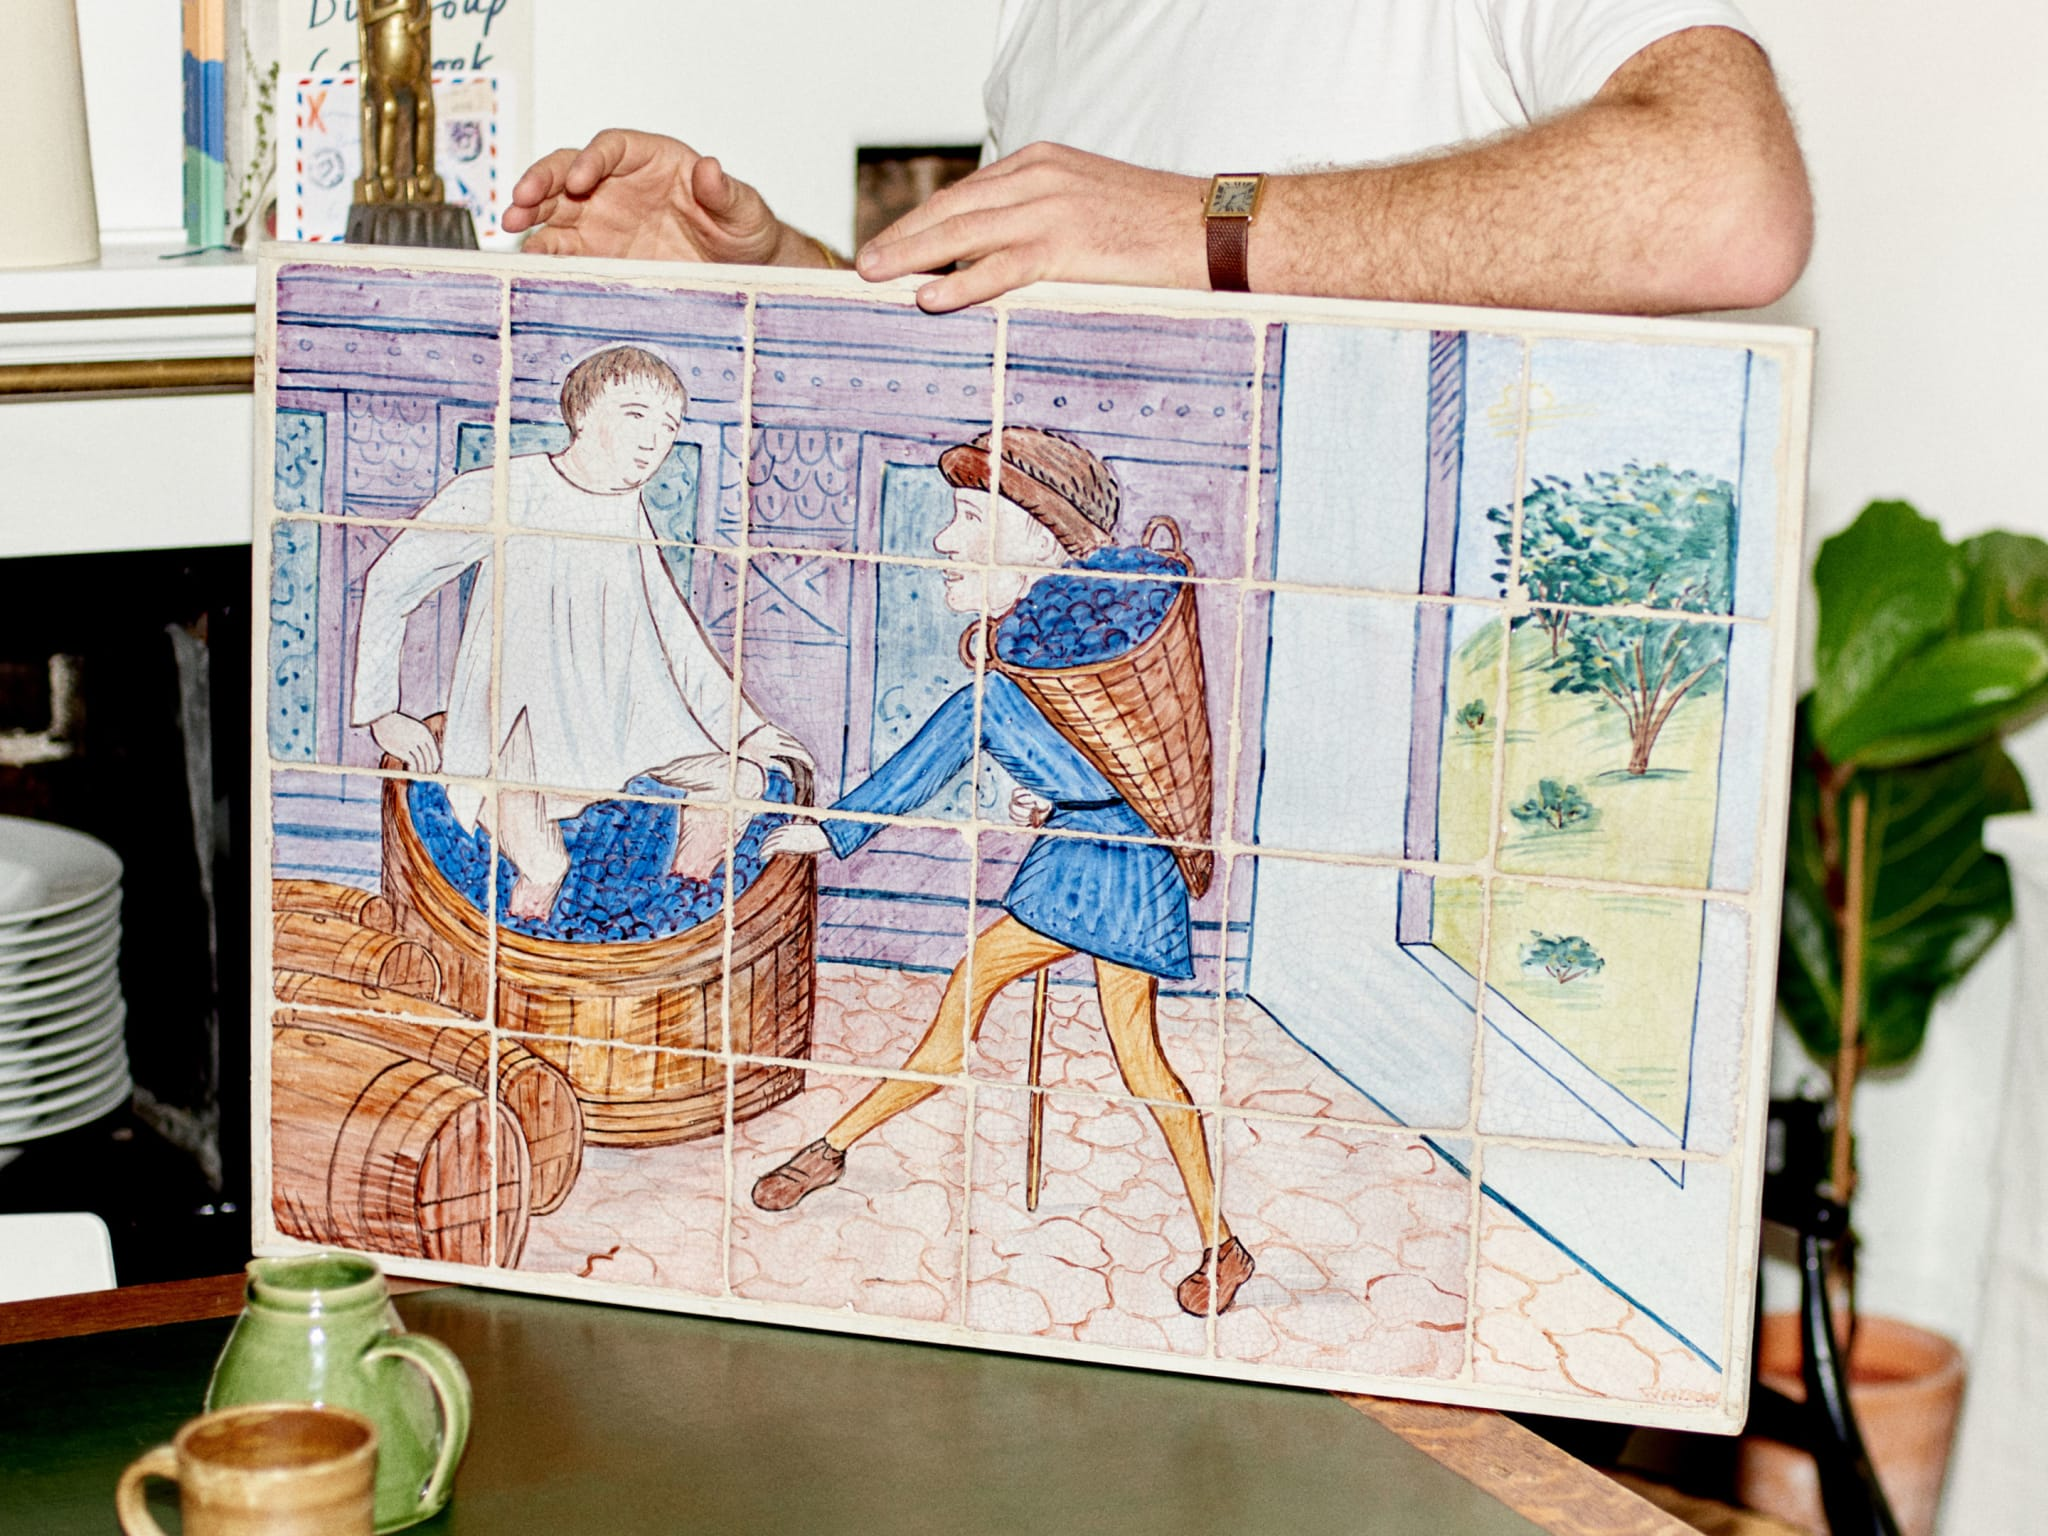 A man holding a painting on tiles.